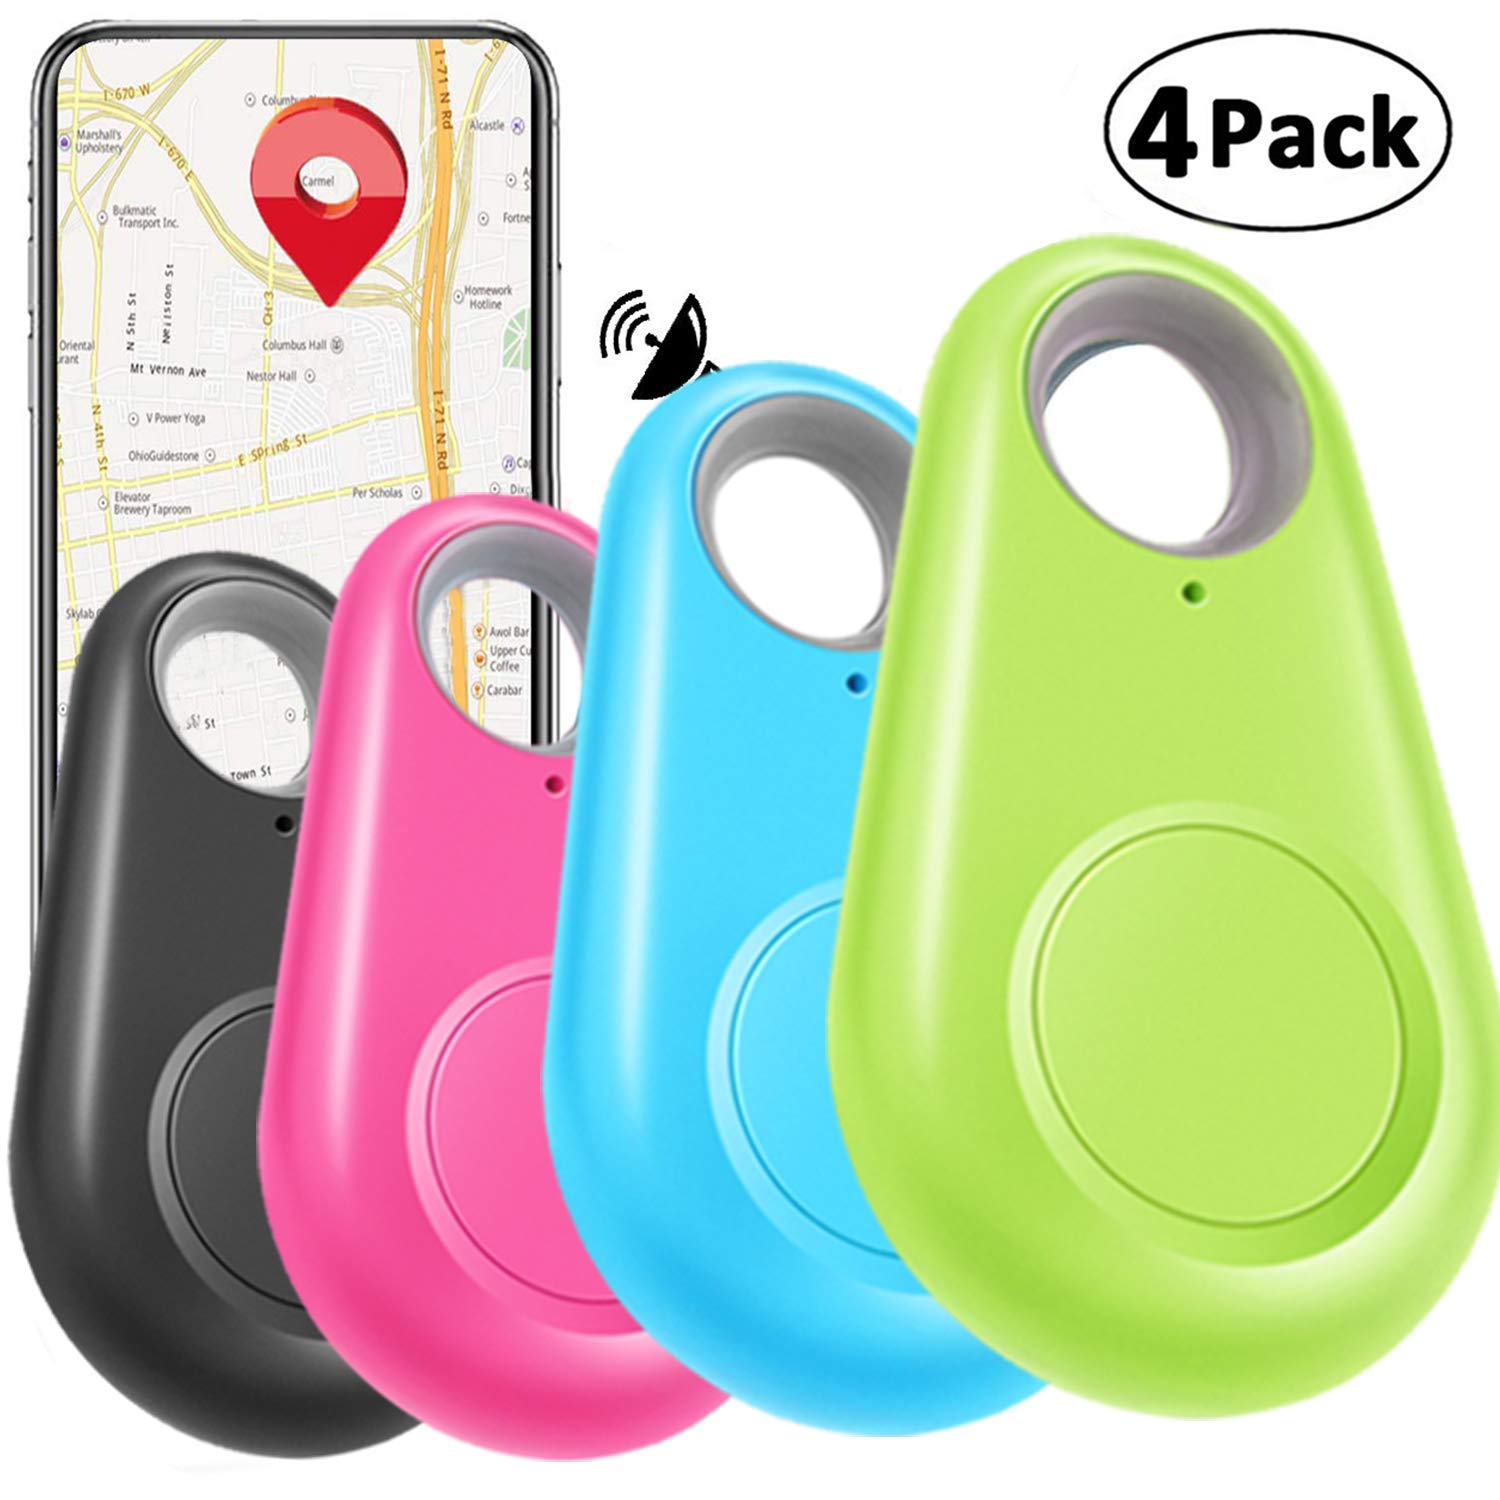 4 Pack Smart GPS Tracker Key Finder Locator Wireless Anti Lost Alarm Sensor Device for Kids Dogs Car Wallet Pets Cats Motorcycles Luggage Smart Phone Selfie Shutter APP Control Compatible iOS Android